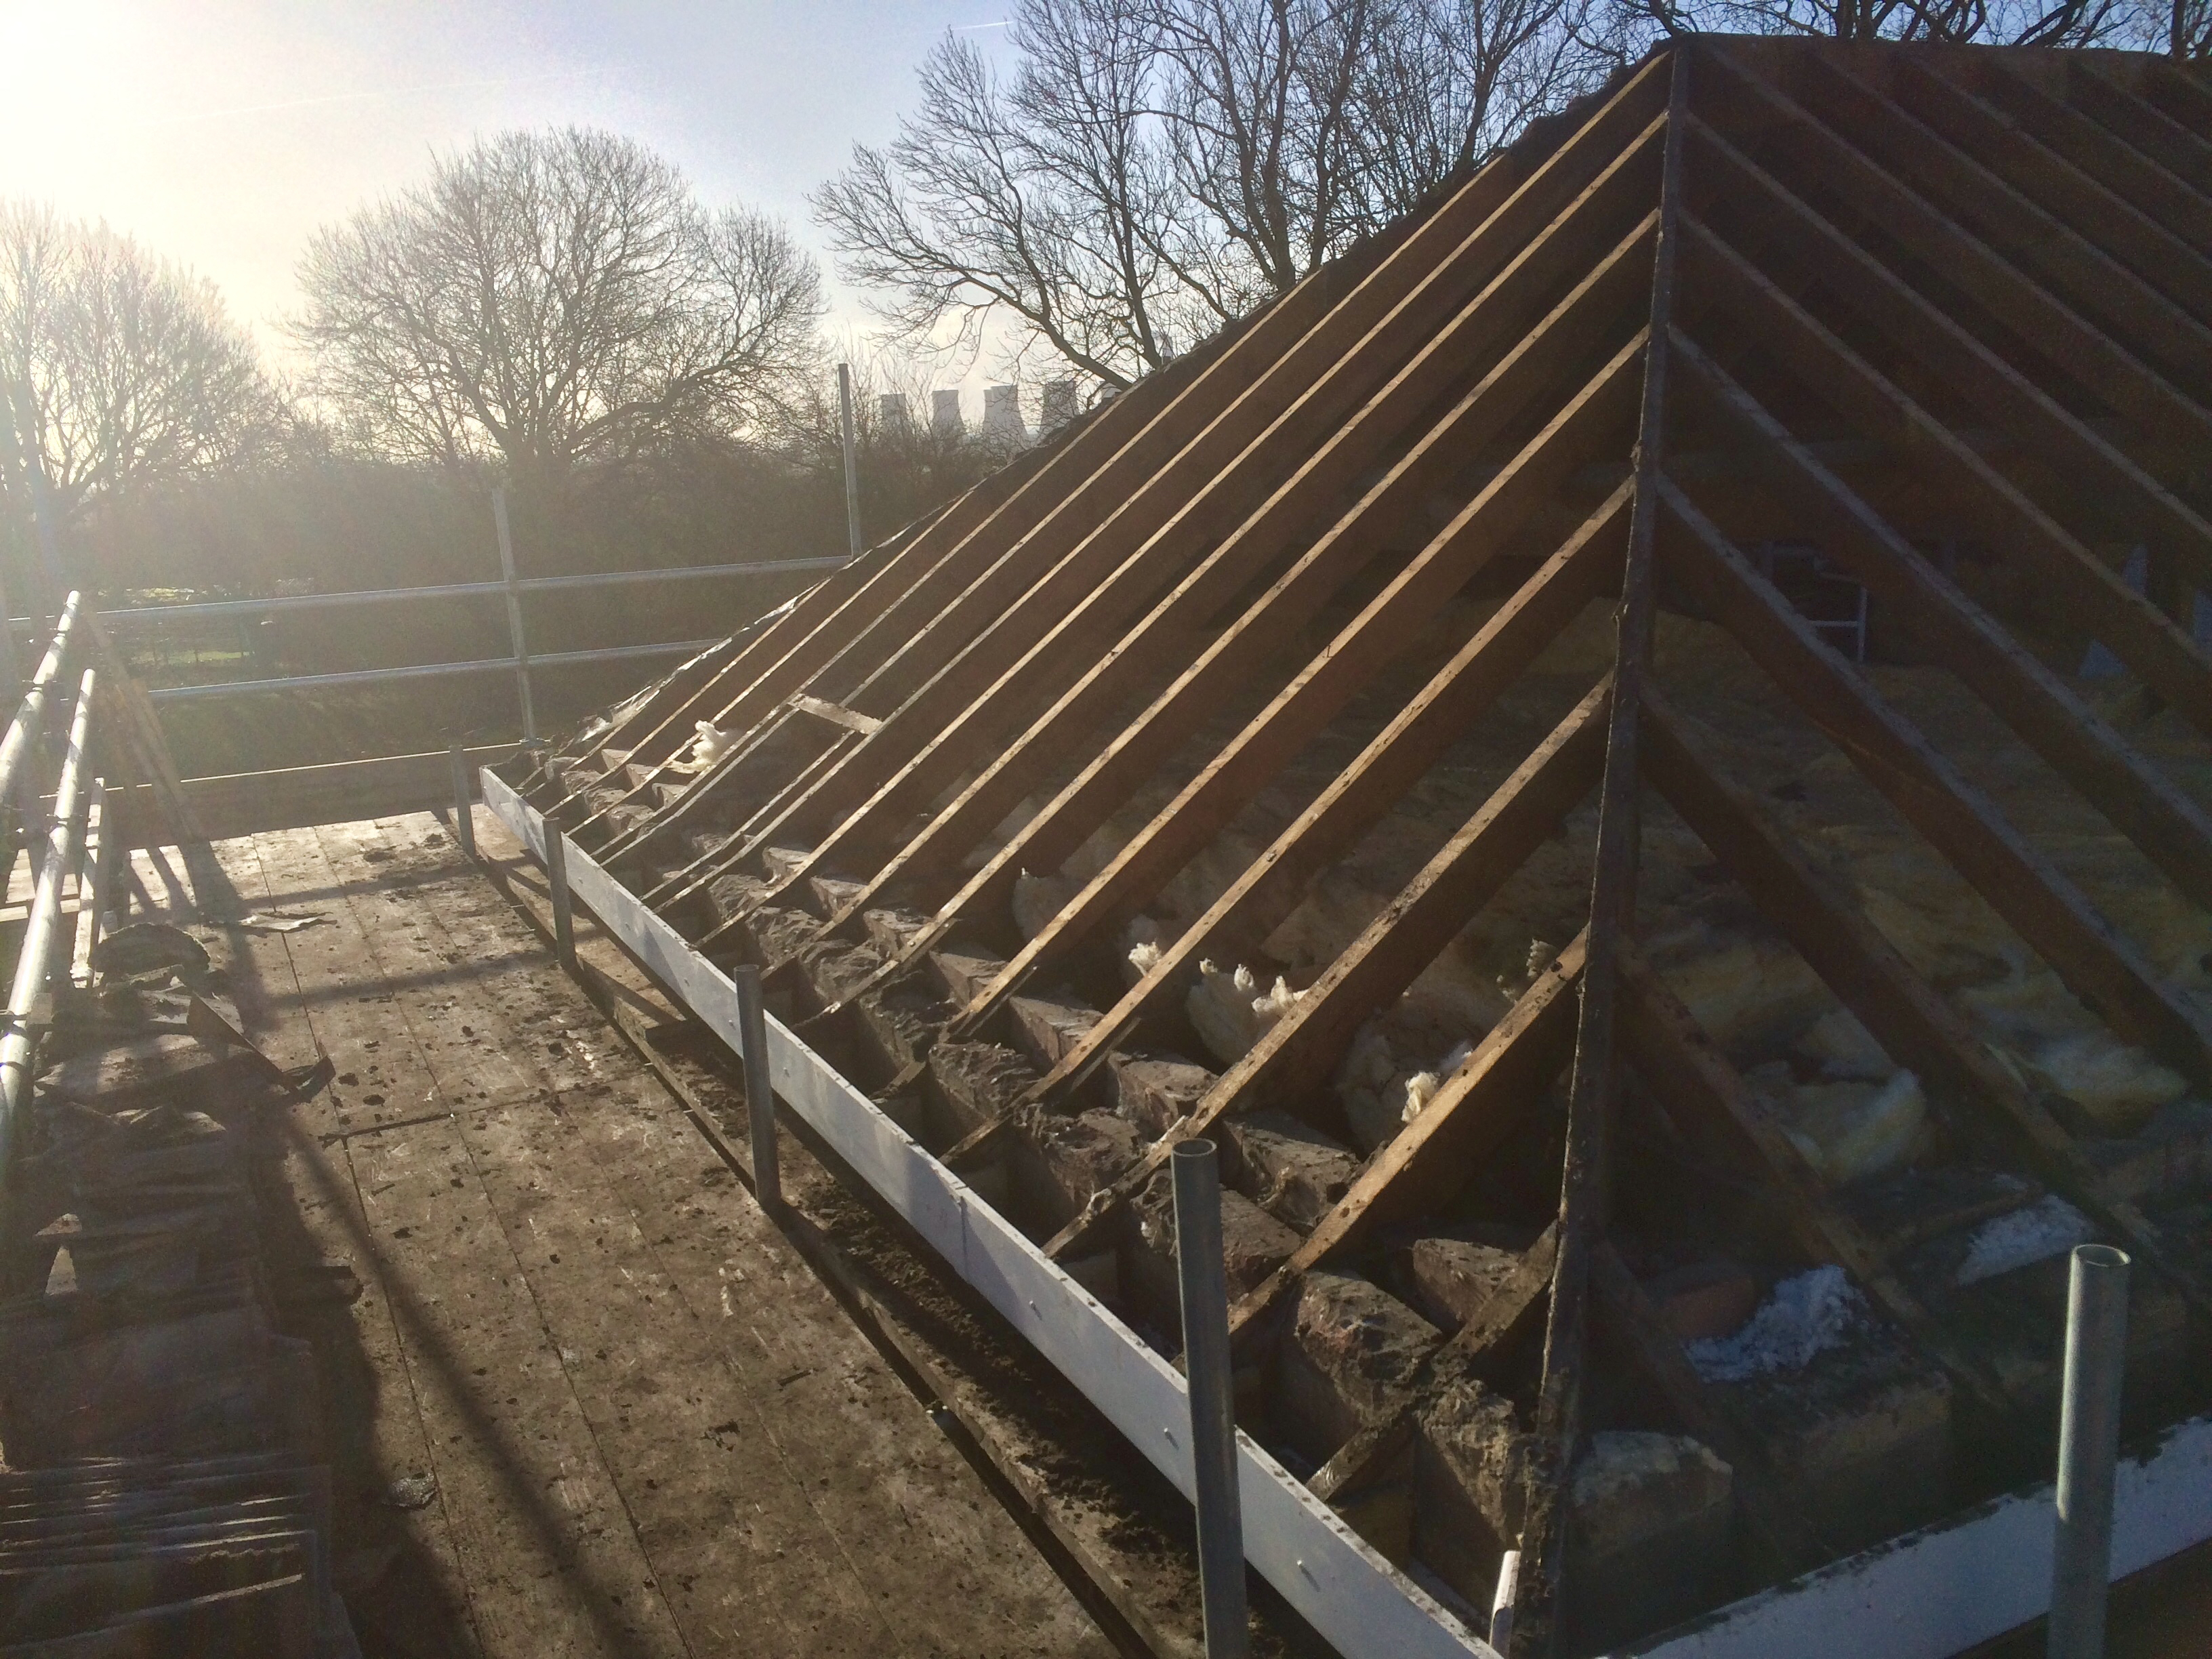 https://www.bluedotroofing.uk/wp-content/uploads/2018/01/bluedot-roofing-re-roof-marton-6.jpg